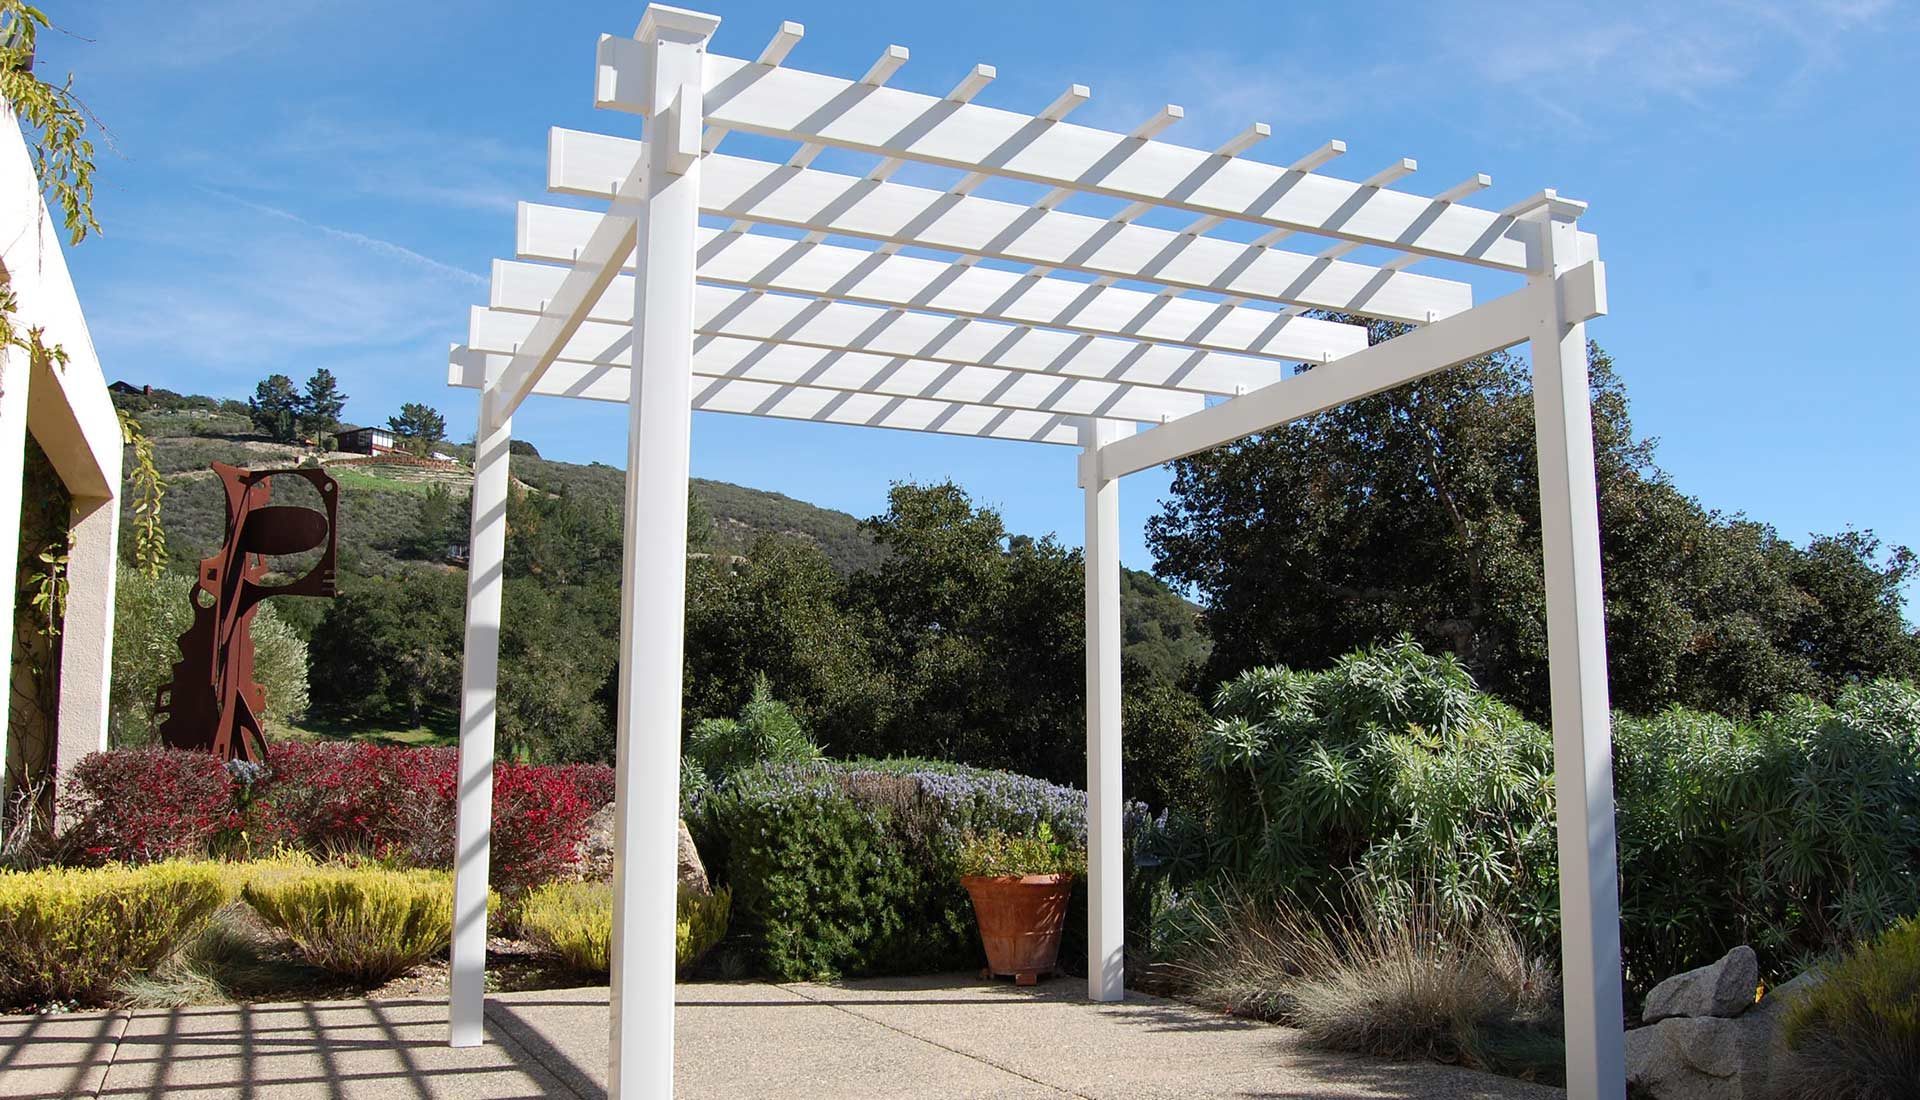 Kingston Pergola